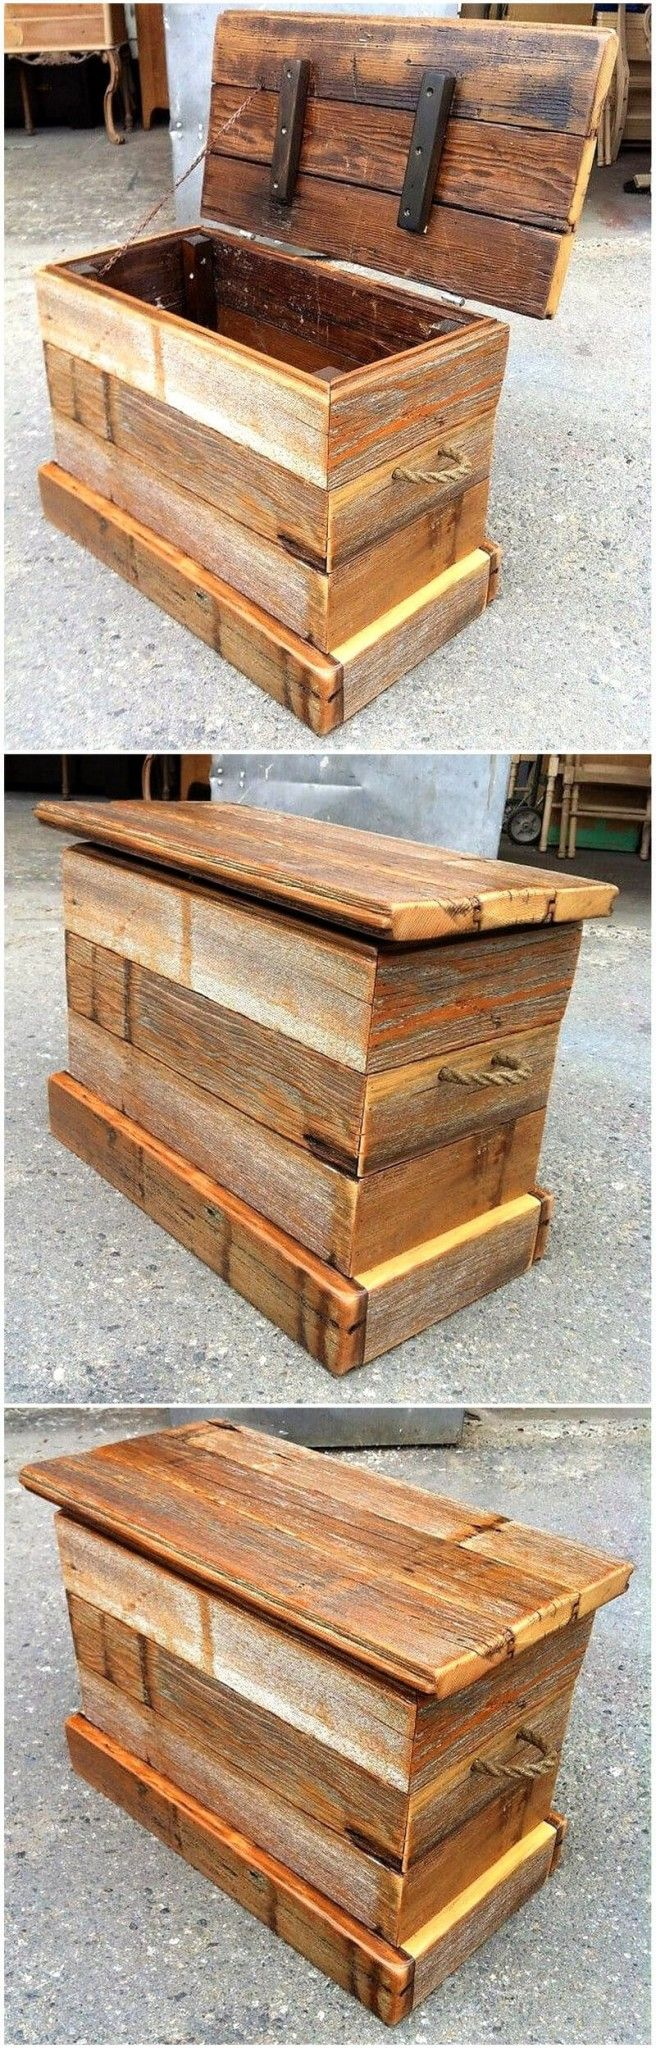 Great Ideas For Reusing or Recycling Wood Pallets   Wood ...